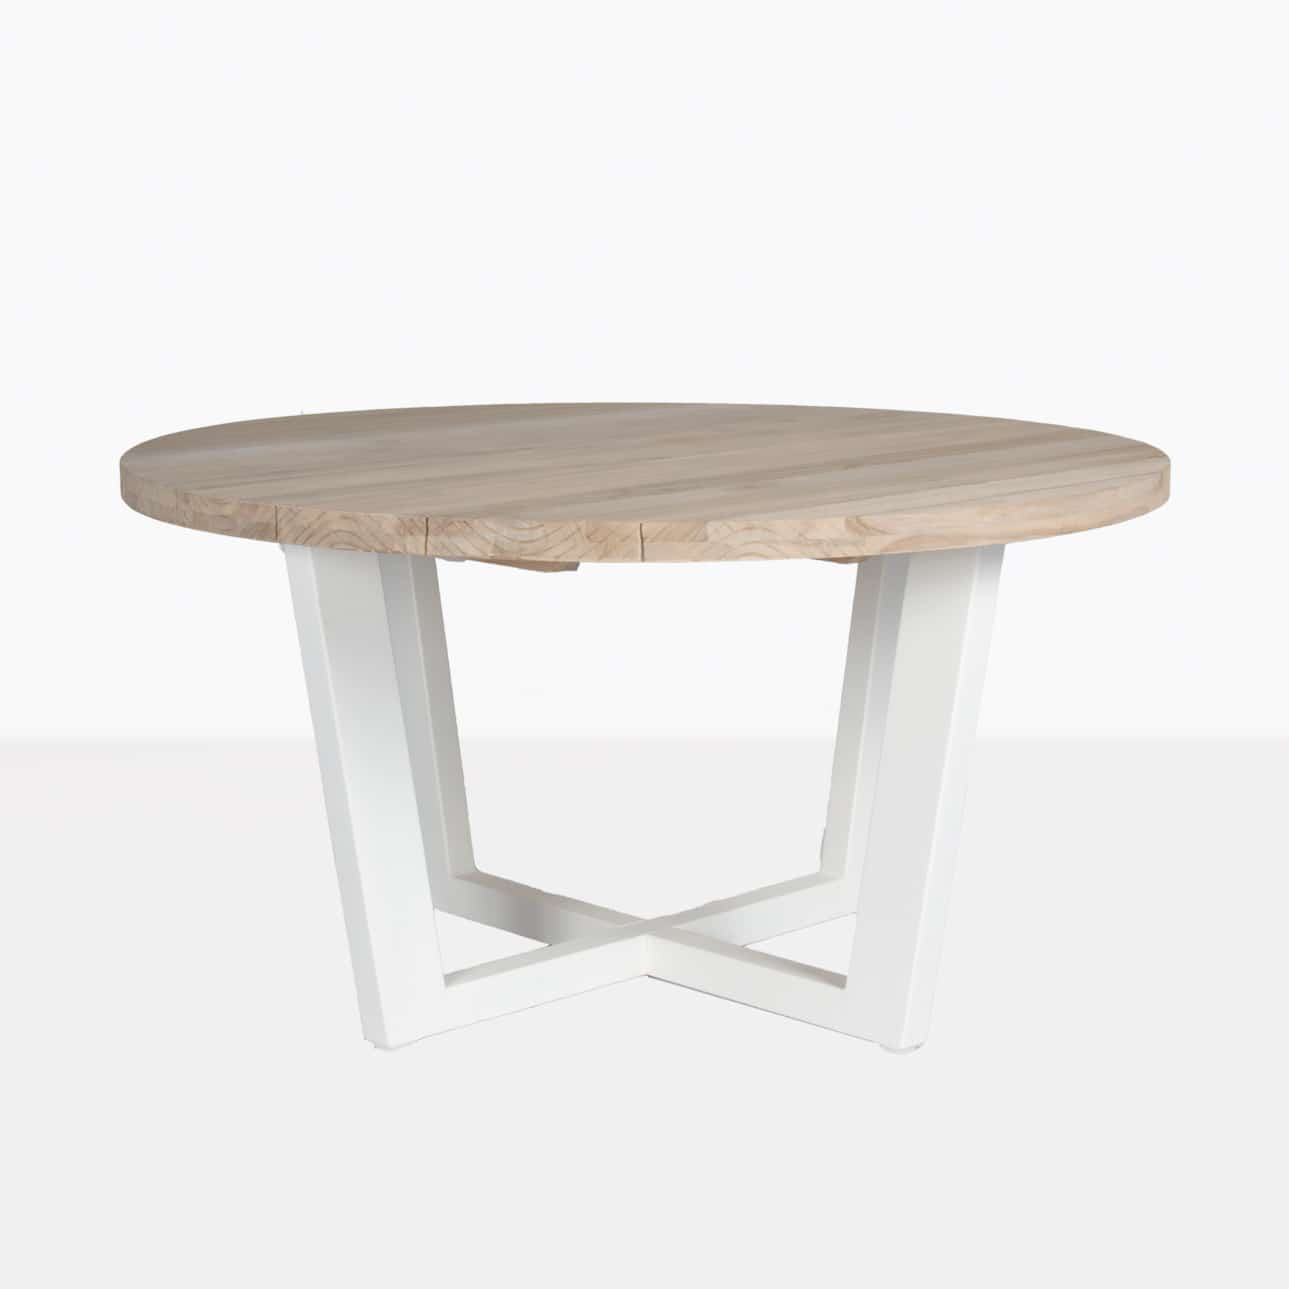 Jimmy Outdoor Round Reclaimed Teak Dining Table White Teak Warehouse